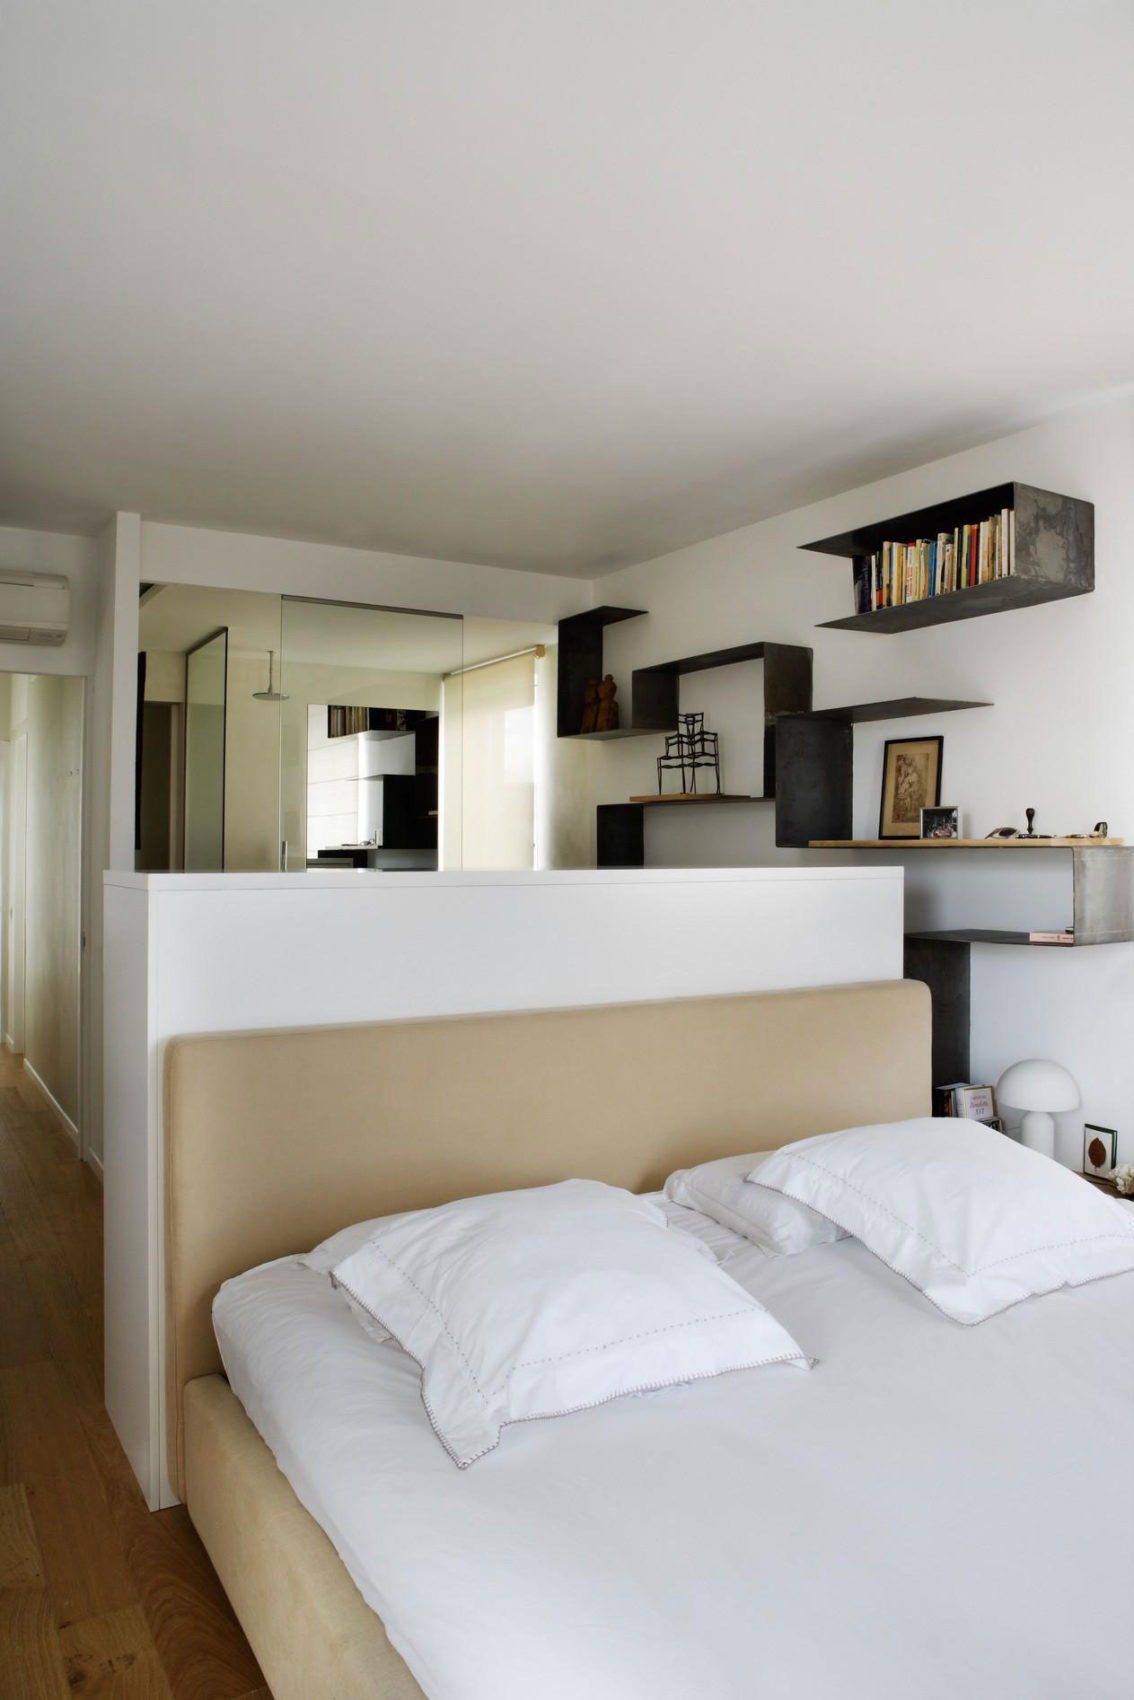 Full Renovation in Rosales by ÁBATON (9)